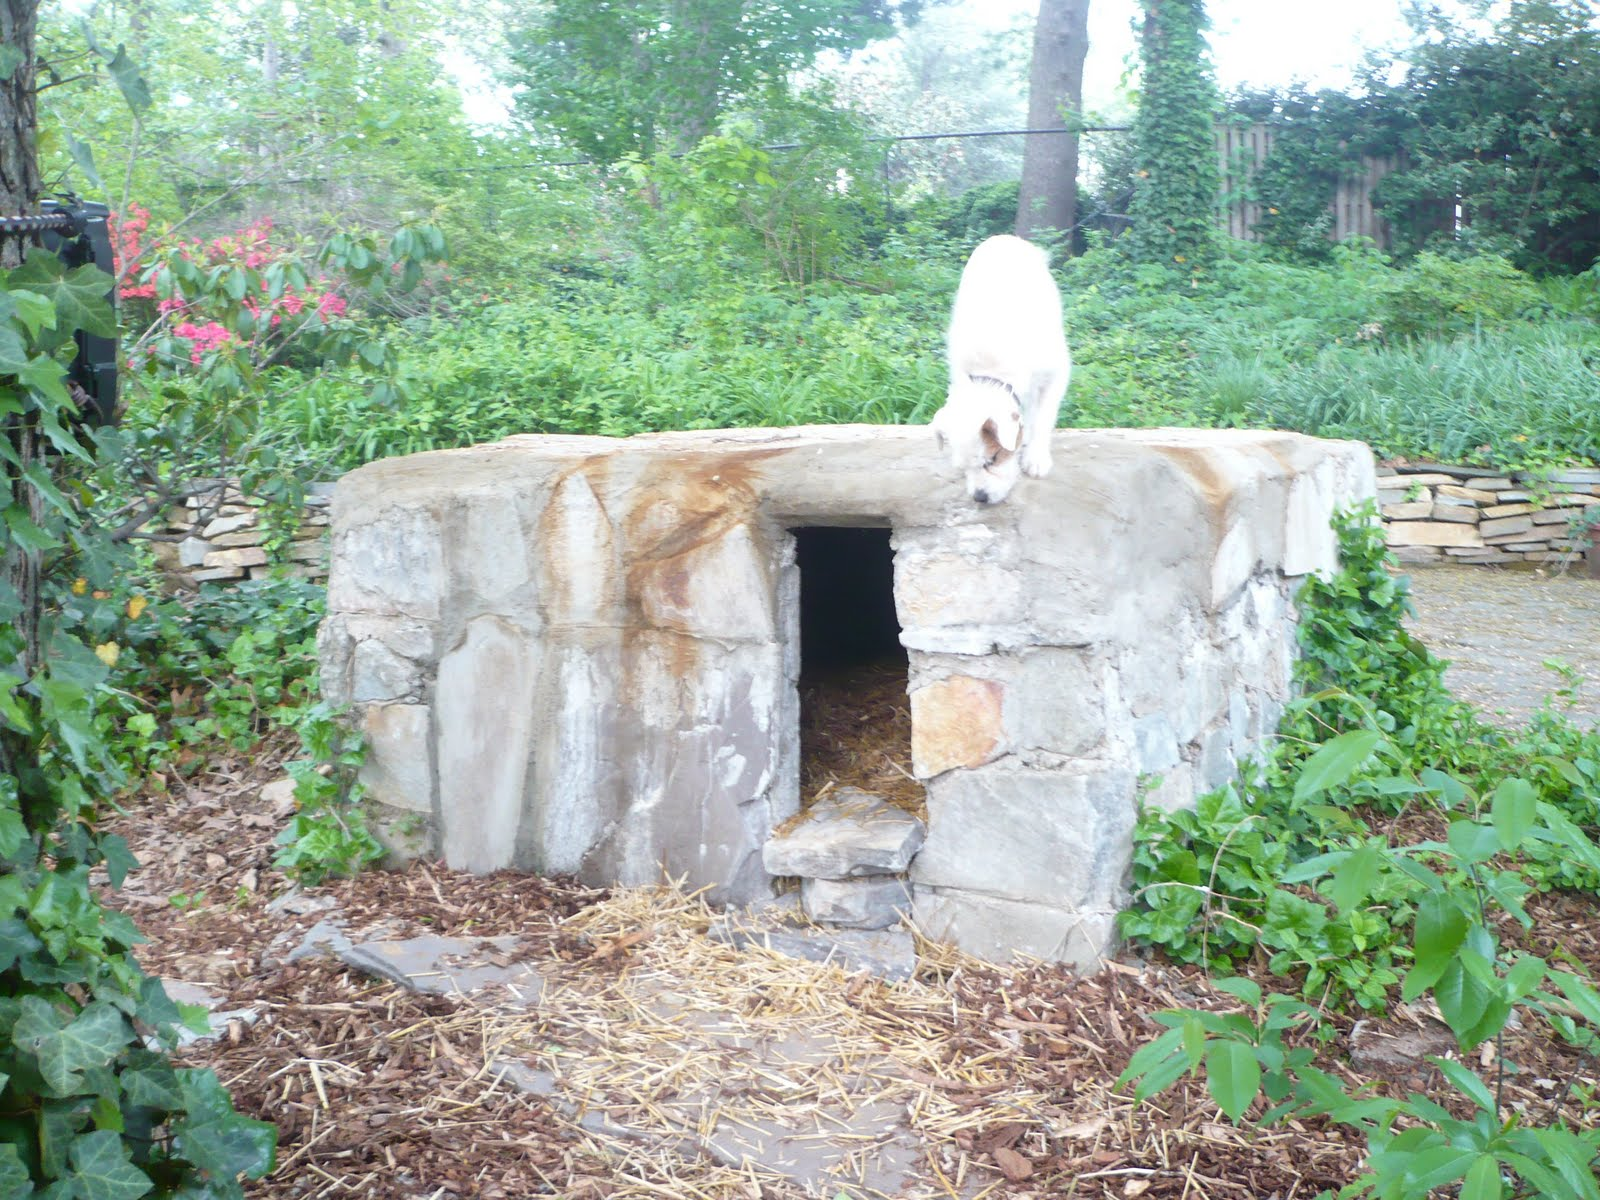 Man Carves Cave With Dog : Terrierman s daily dose the doggy man cave